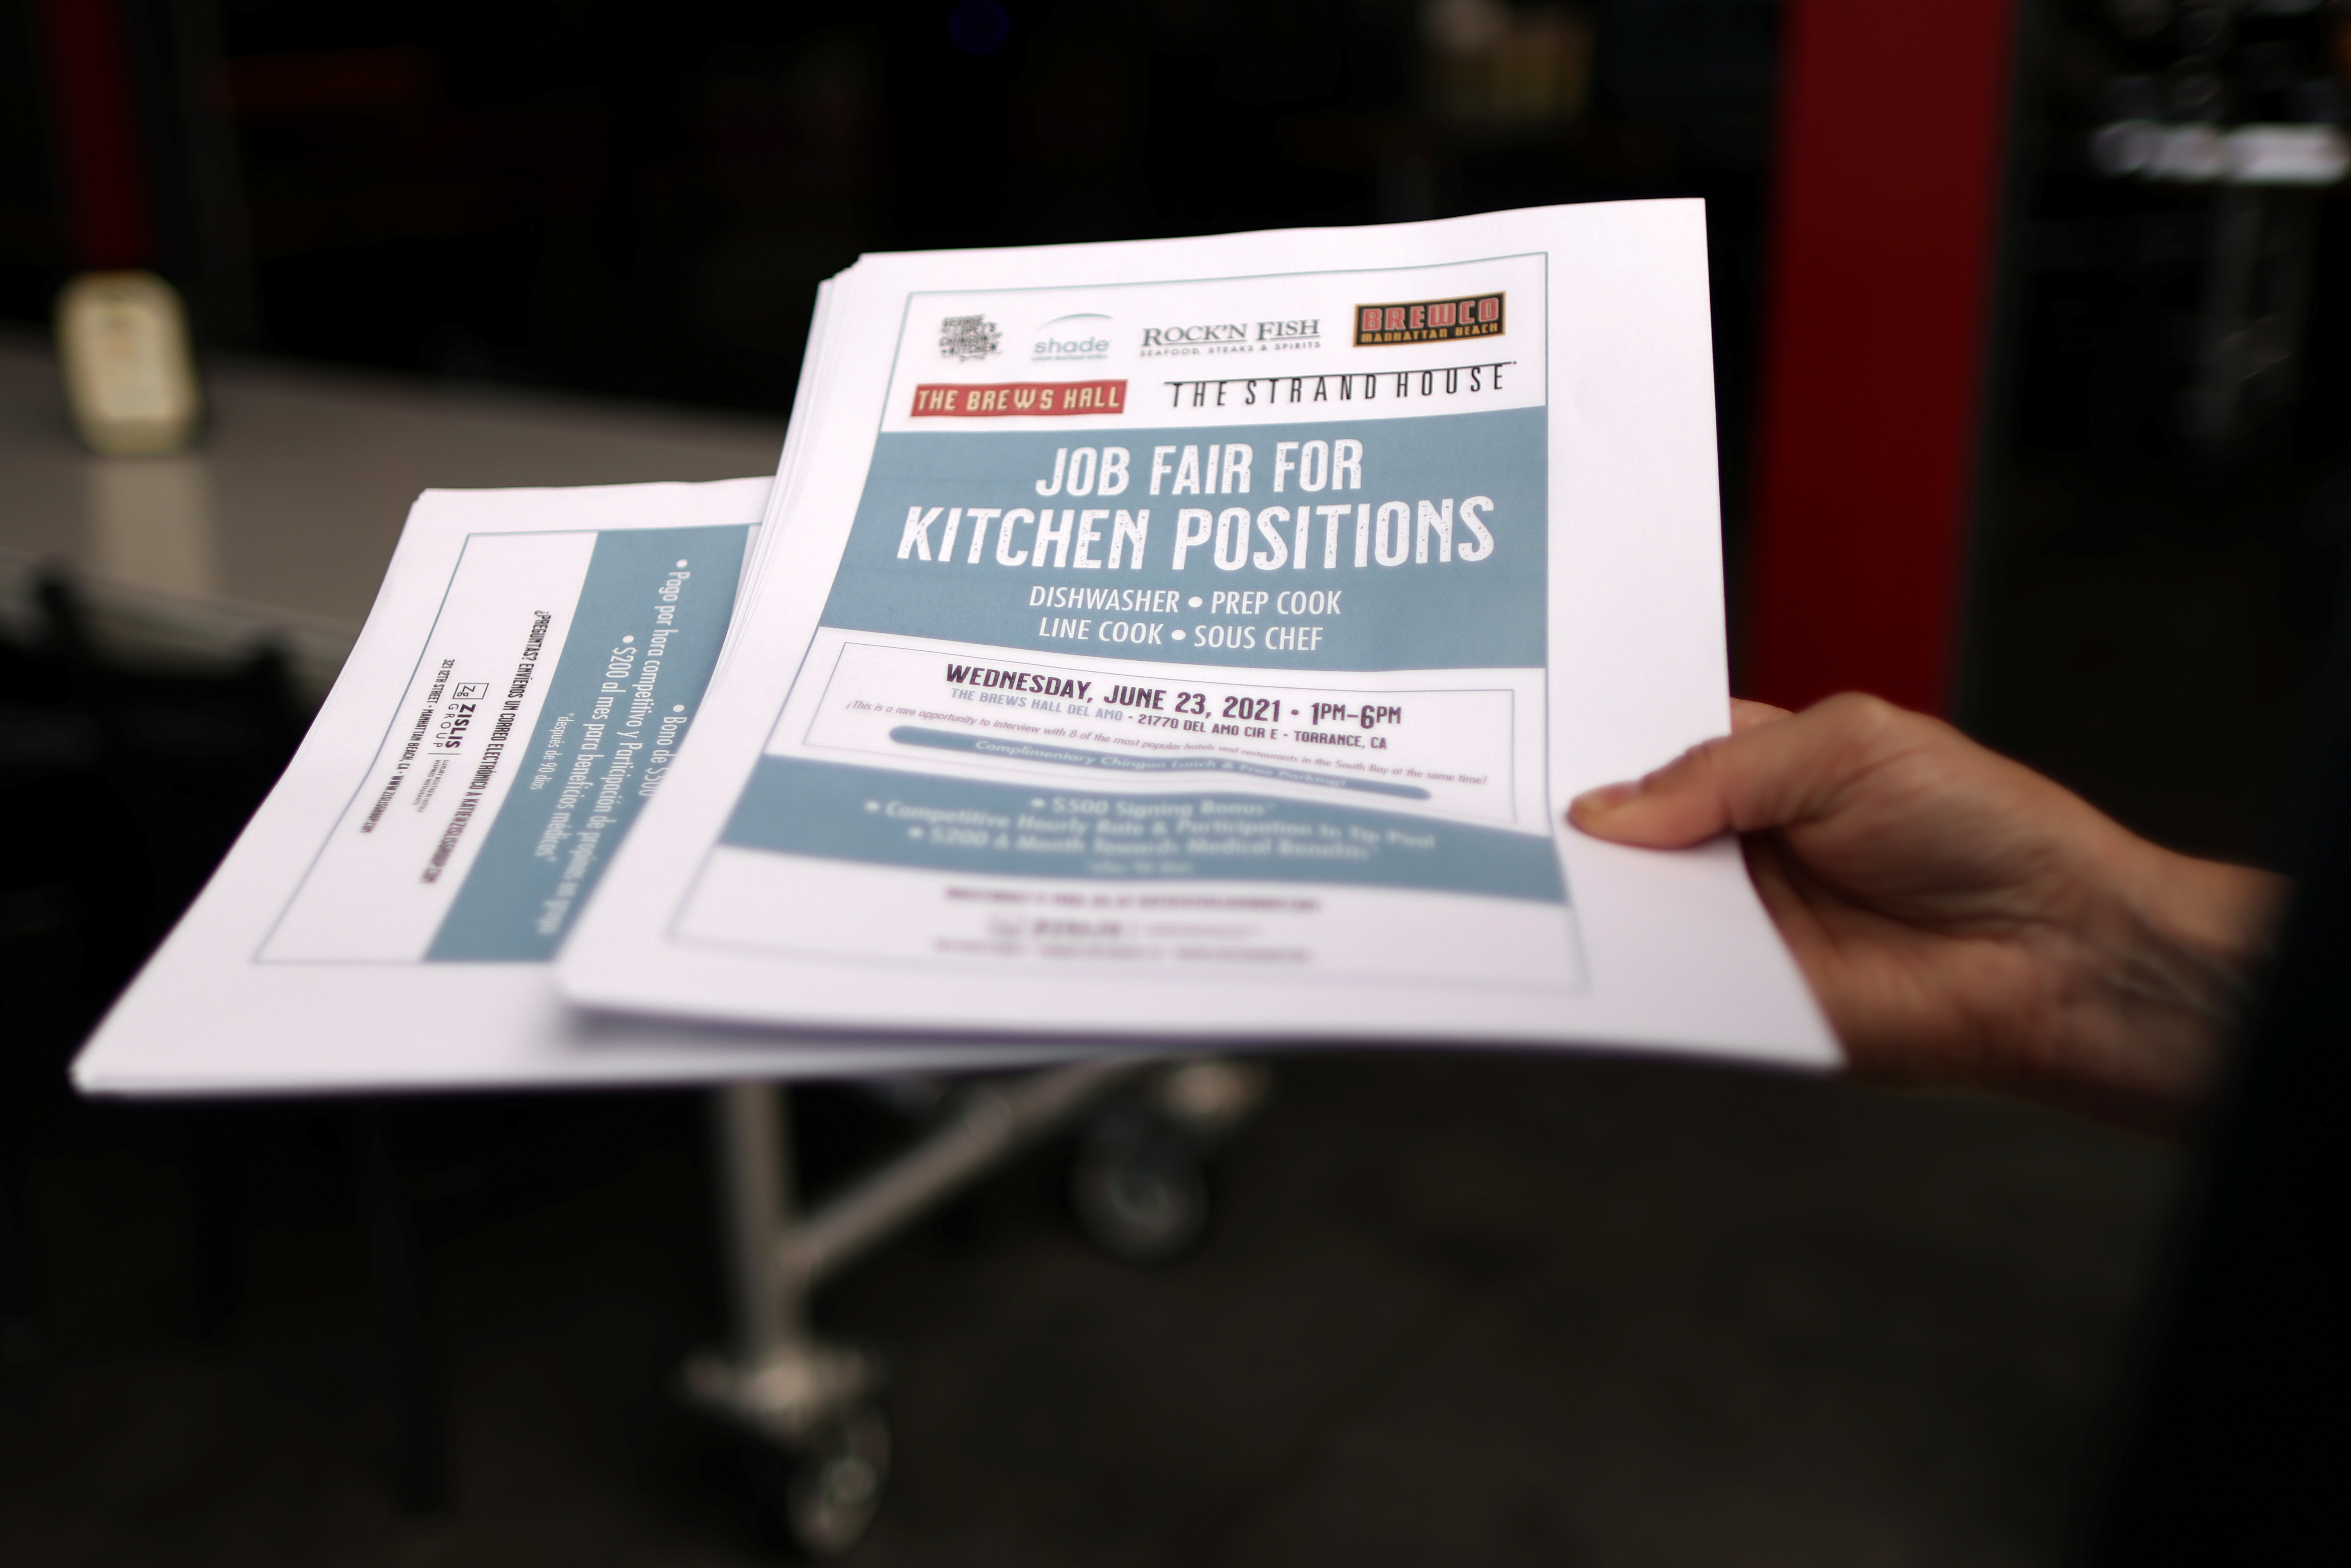 A woman holds fliers for a job fair for restaurant and hotel workers, after coronavirus disease (COVID-19) restrictions were lifted, in Torrance, near Los Angeles, California, U.S., June 23, 2021. REUTERS/Lucy Nicholson